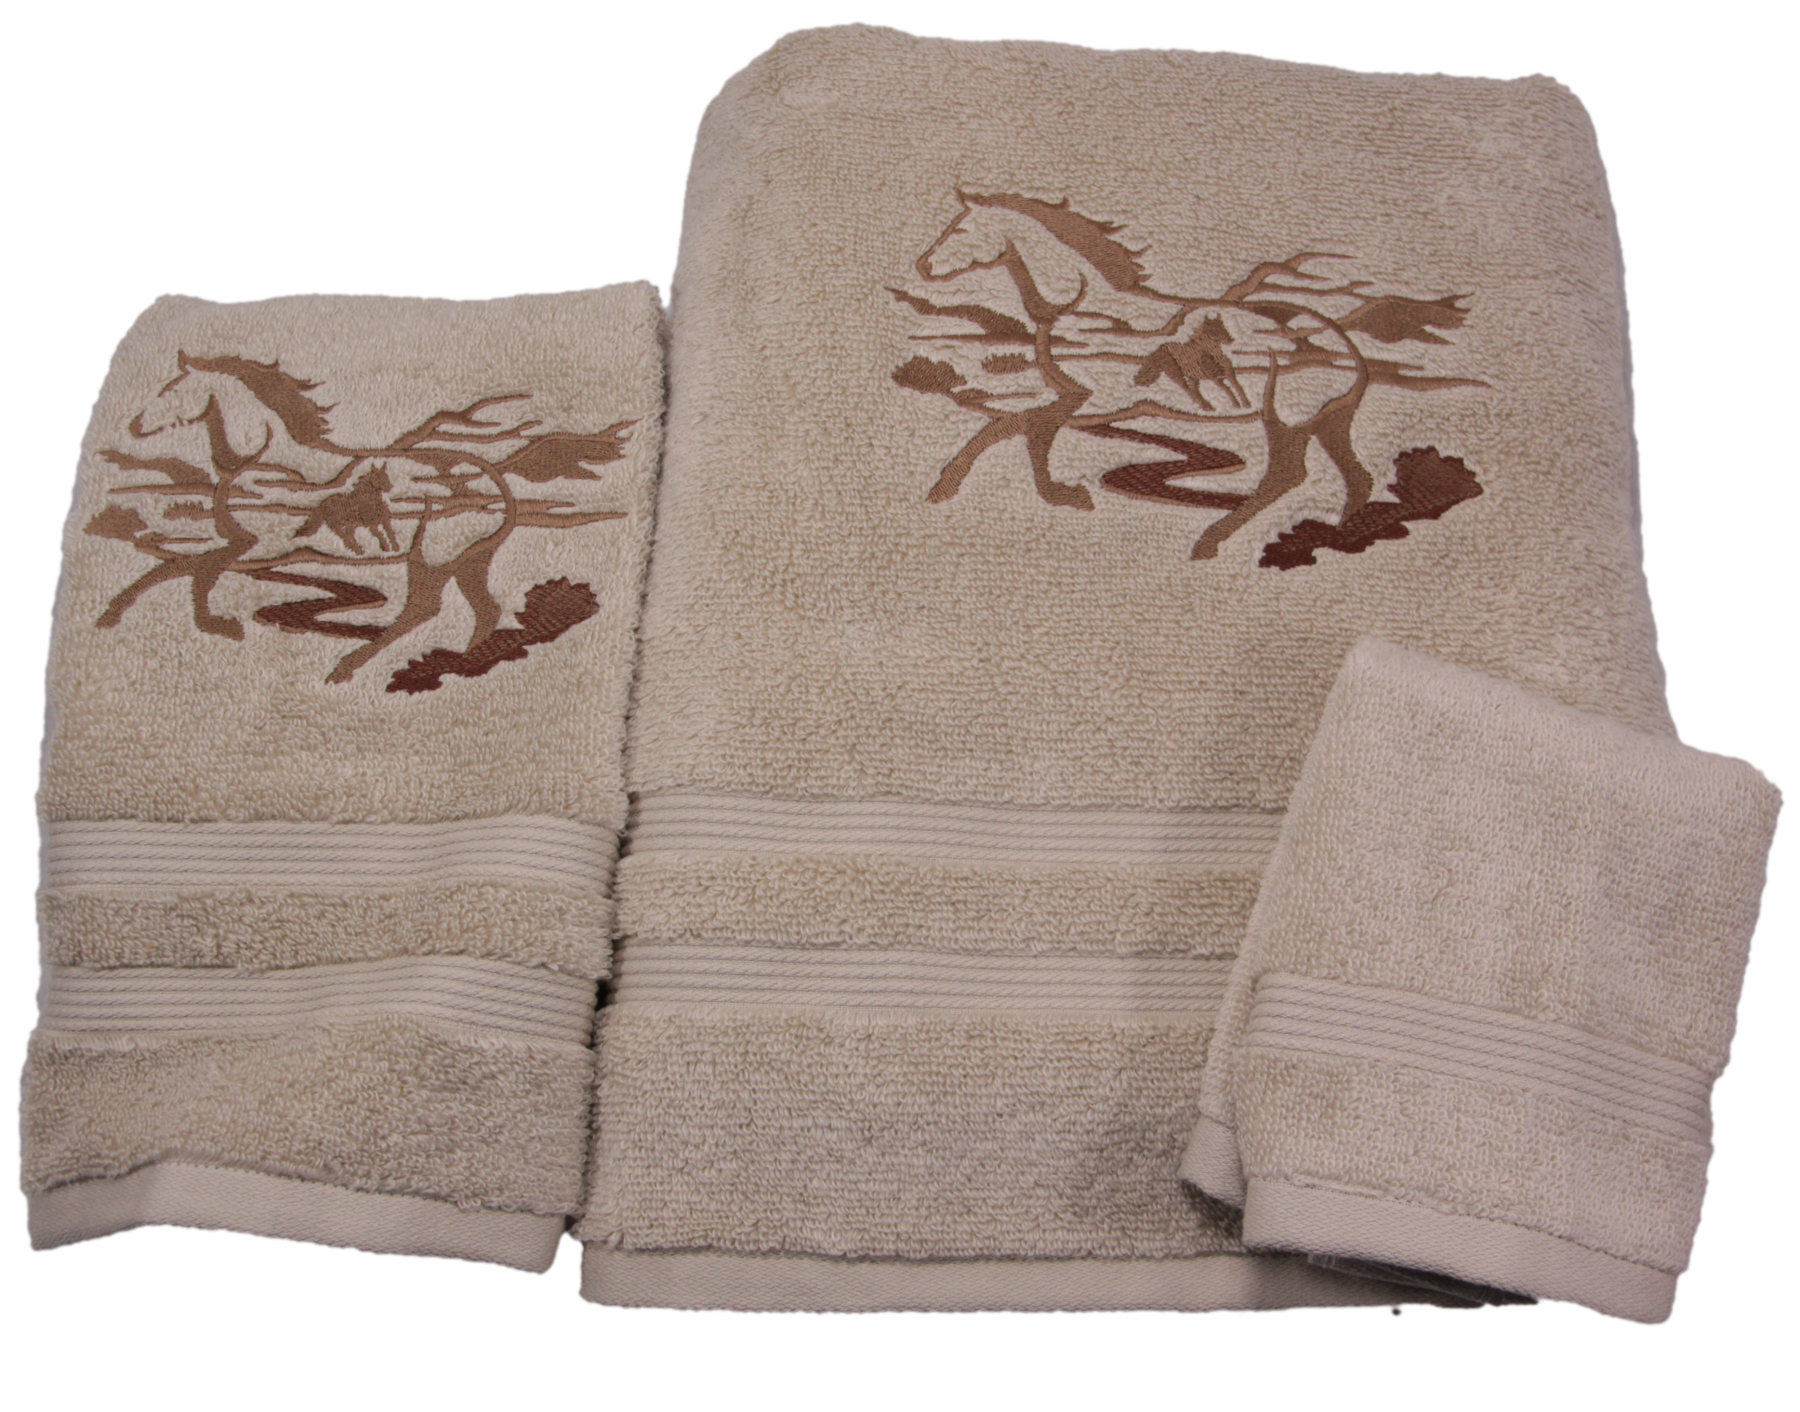 Running Wild Horse Silhouette Embroidered Bath Towels